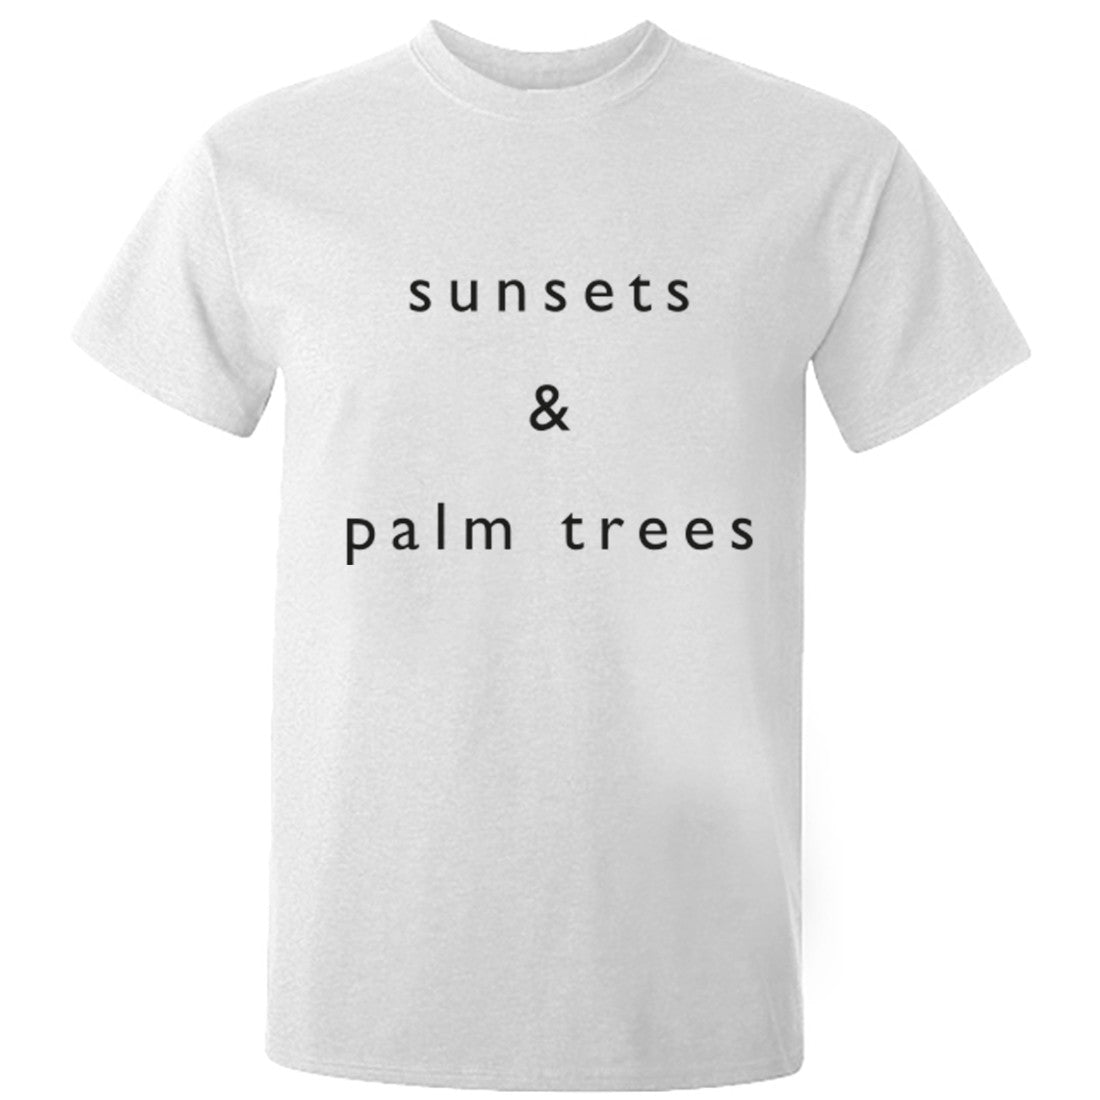 Sunsets & Palm Trees Unisex Fit T-Shirt K0768 - Illustrated Identity Ltd.